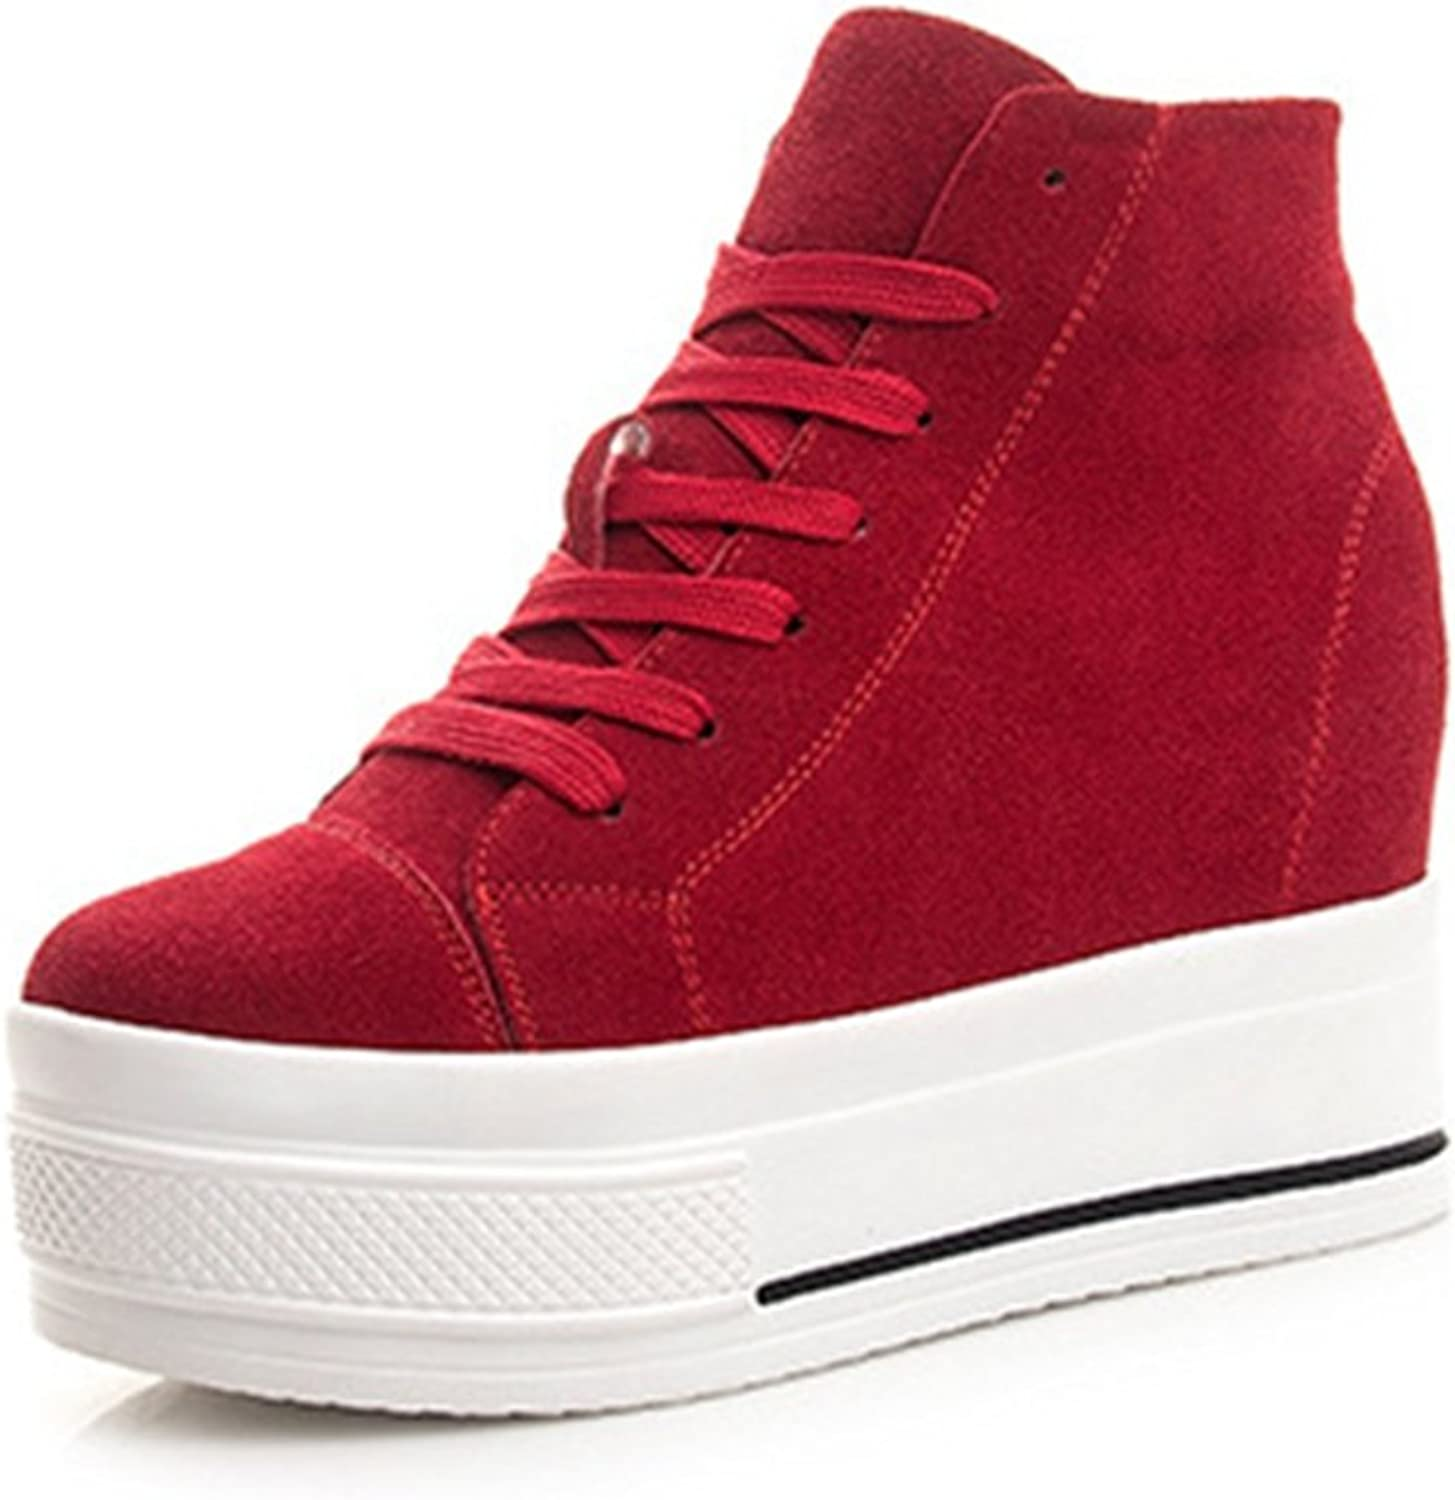 Btrada Btrada Btrada Woherrar Formal Wedge Mode Sneeaker High Top duk Lace Up Platform skor  snabb frakt över hela världen